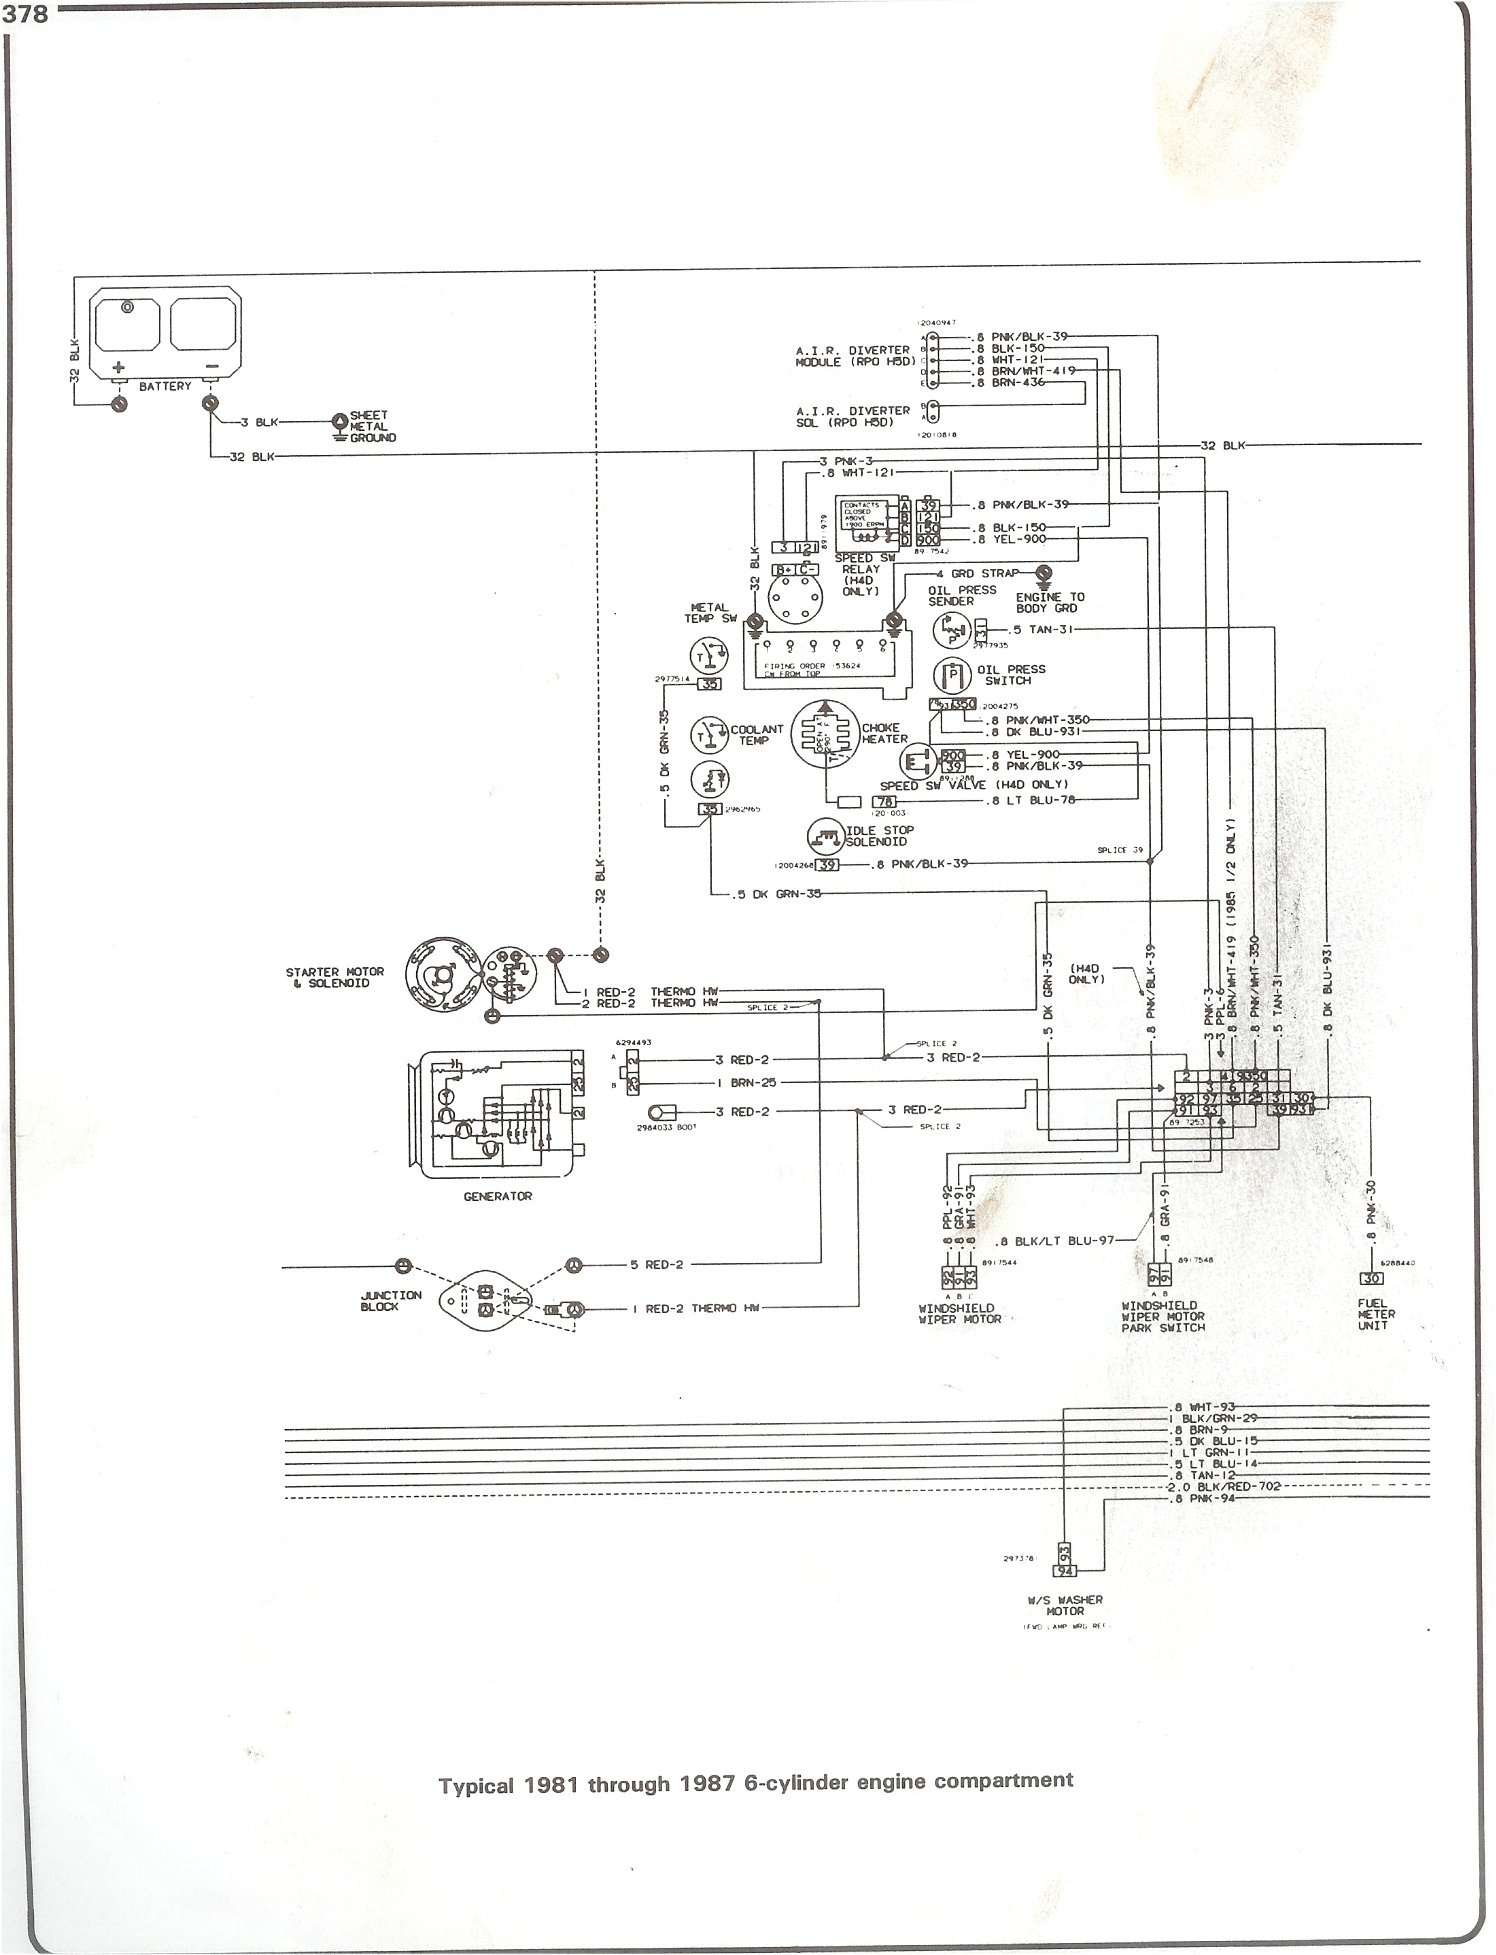 1990 Chevy Firewall Wiring Diagram | Wiring Diagram on